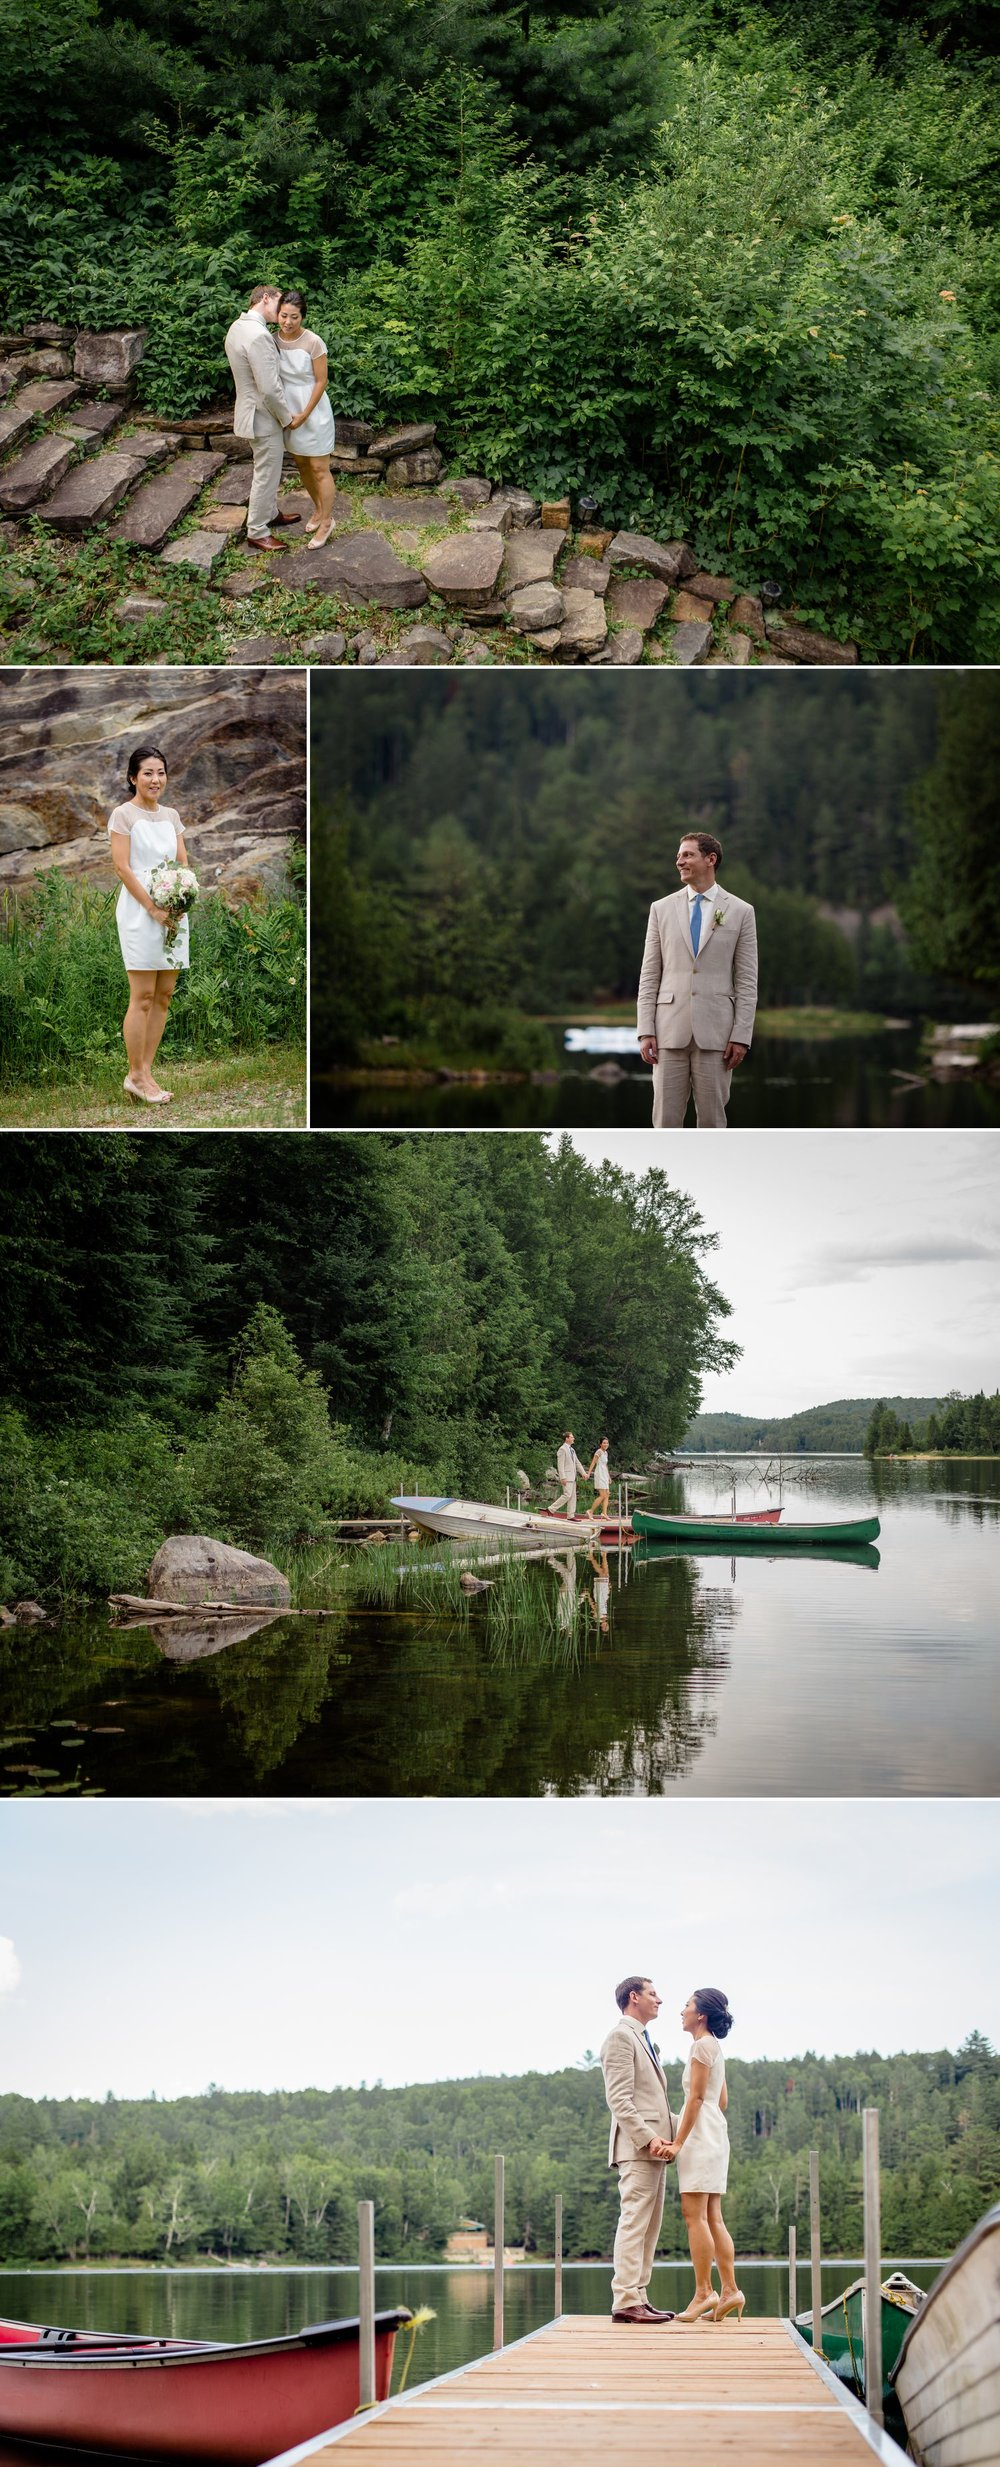 Portraits of the bride and groom during their wedding at their cottage